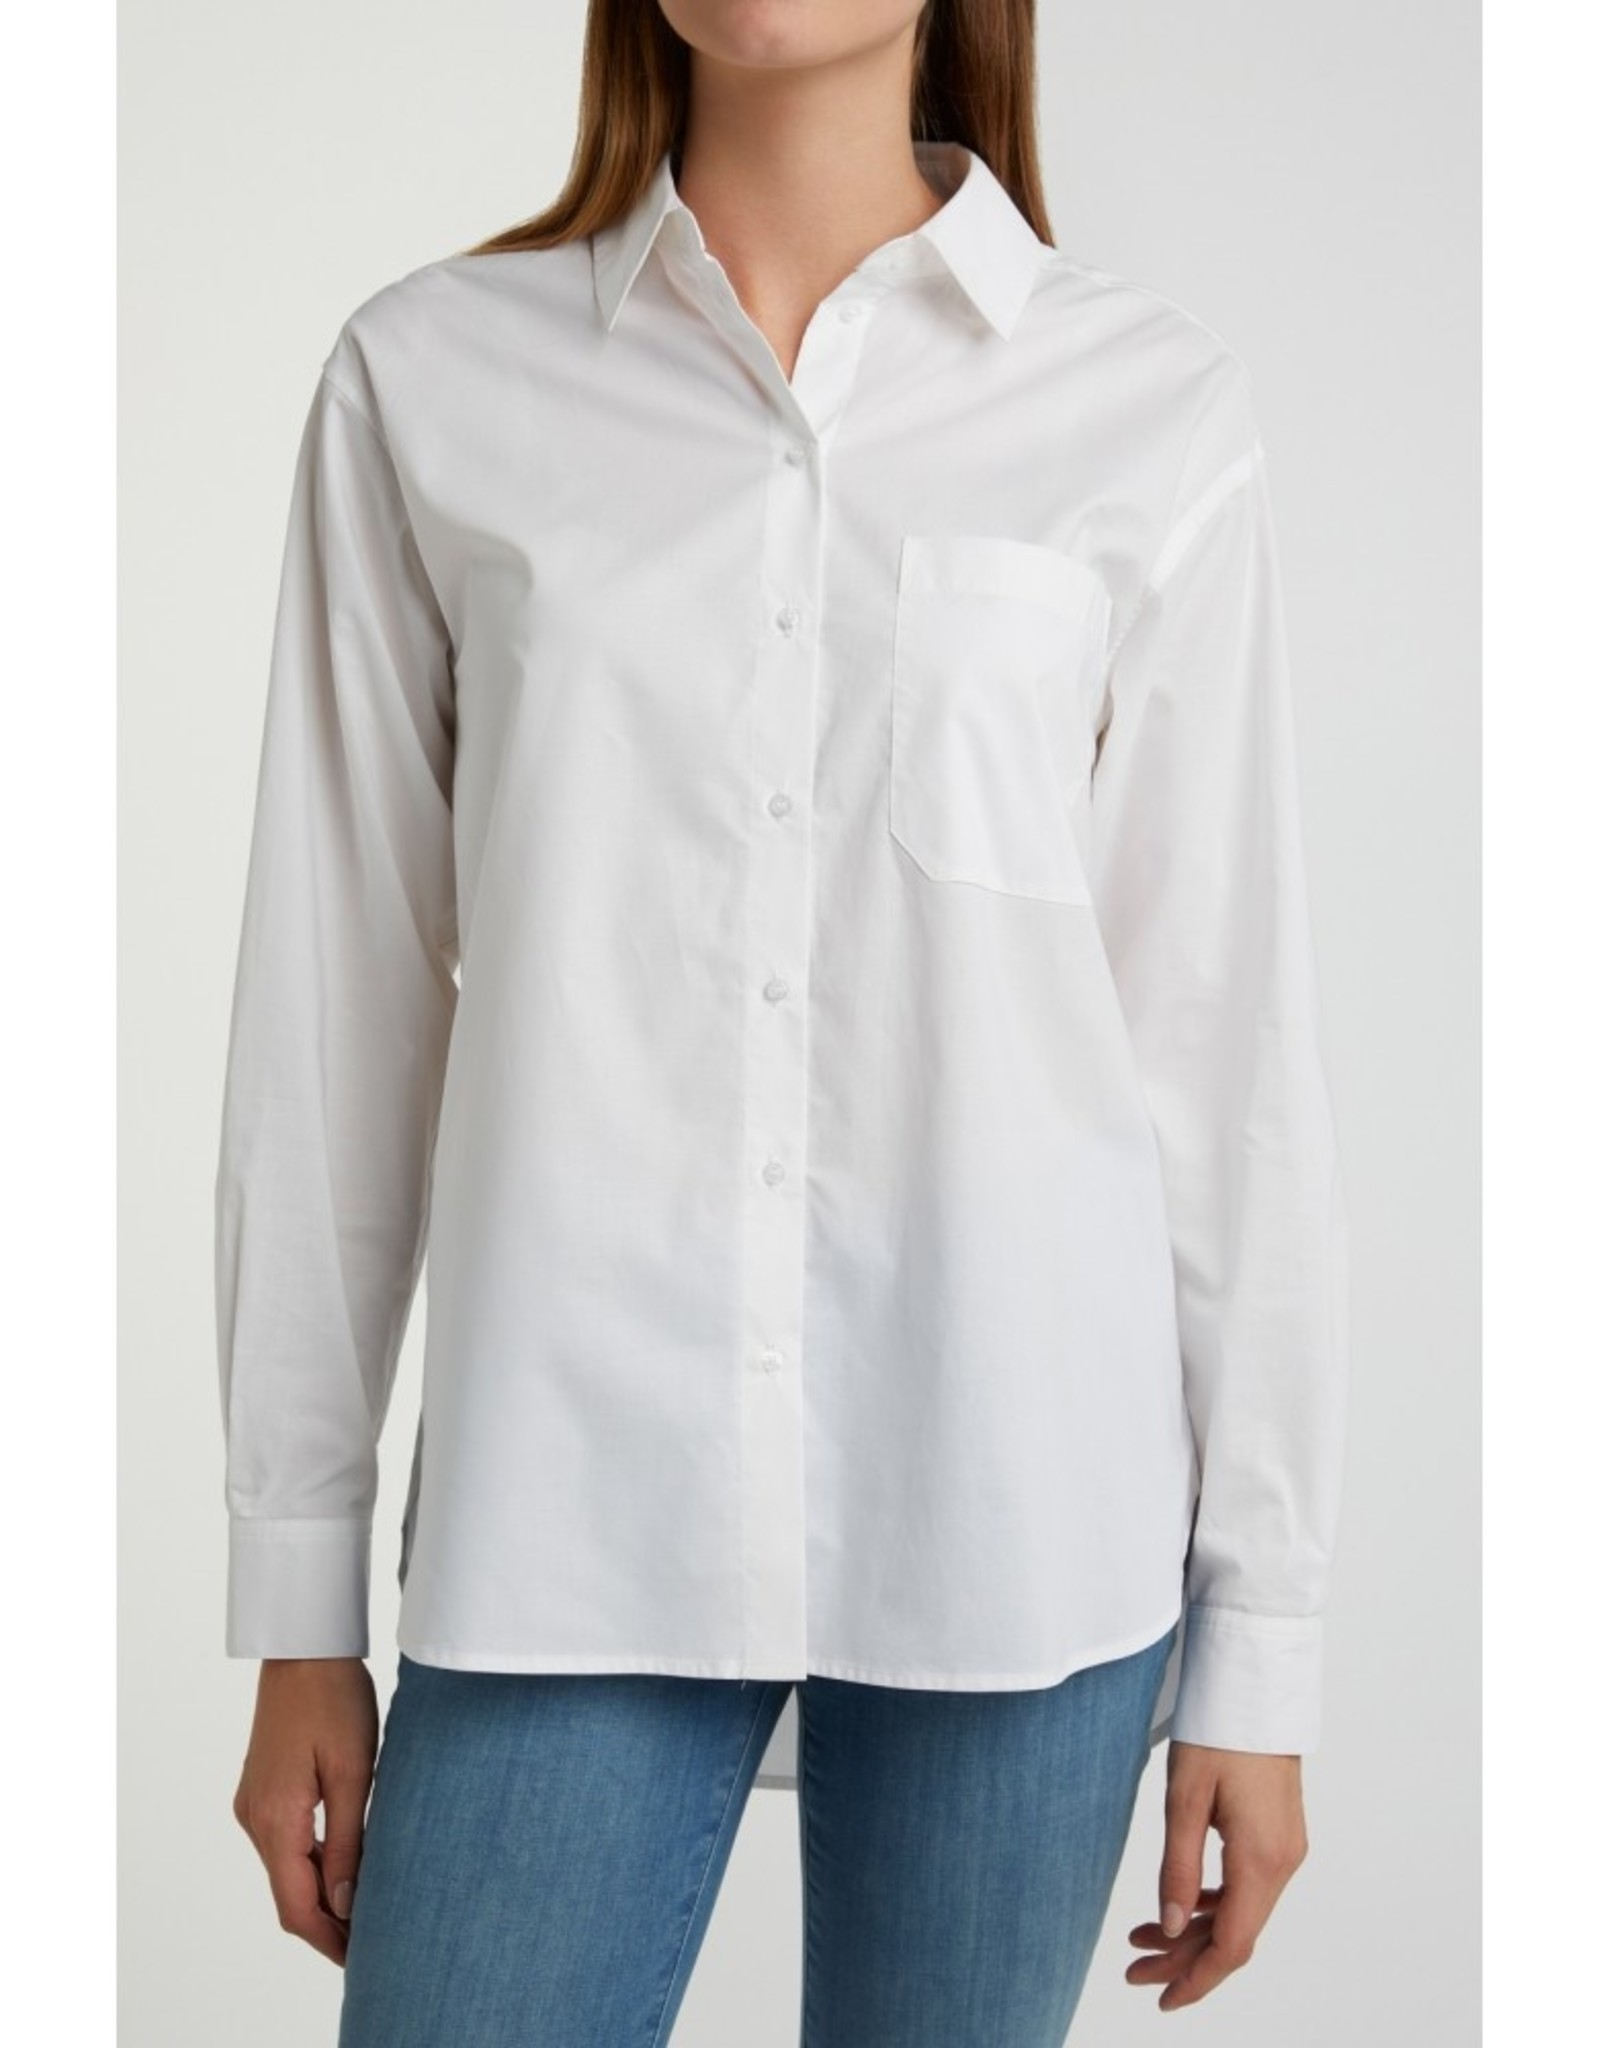 Yaya Yaya Cotton Blouse